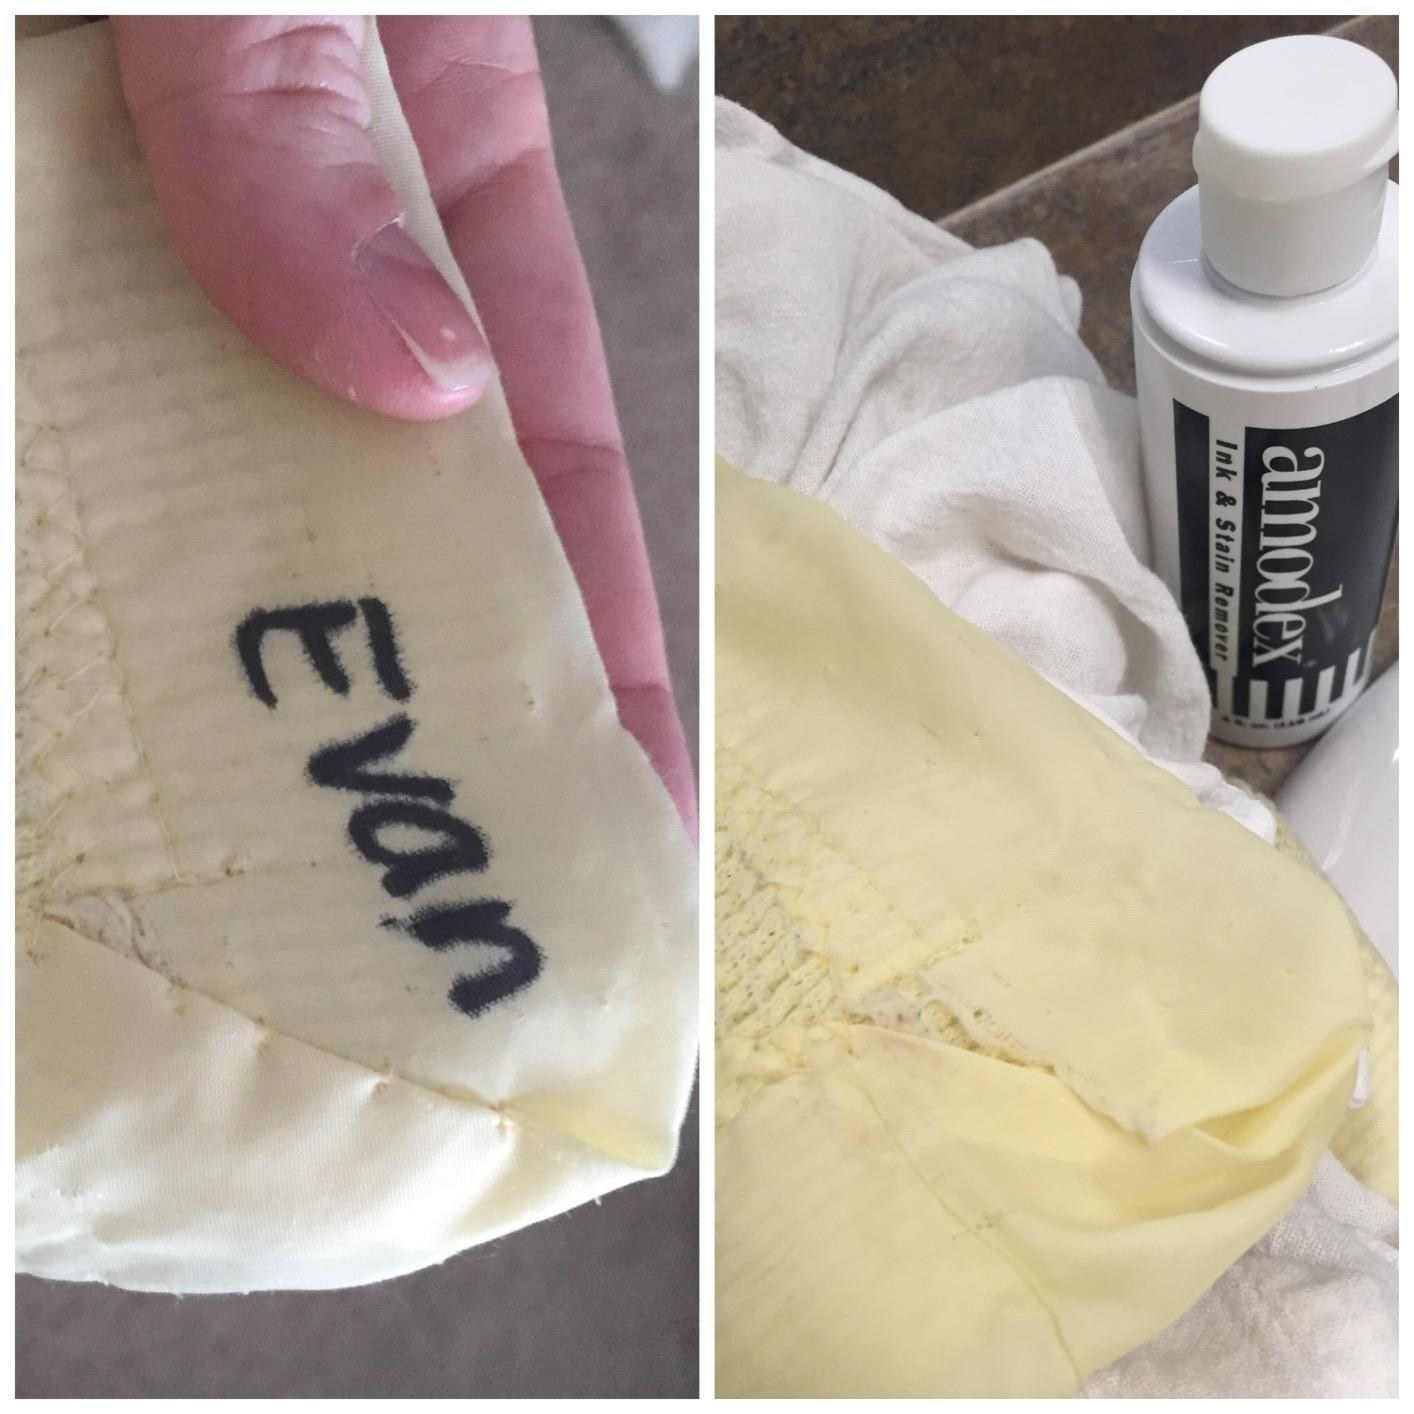 A reviewer photo of fabric with a name written in marker that was removed using the ink remover